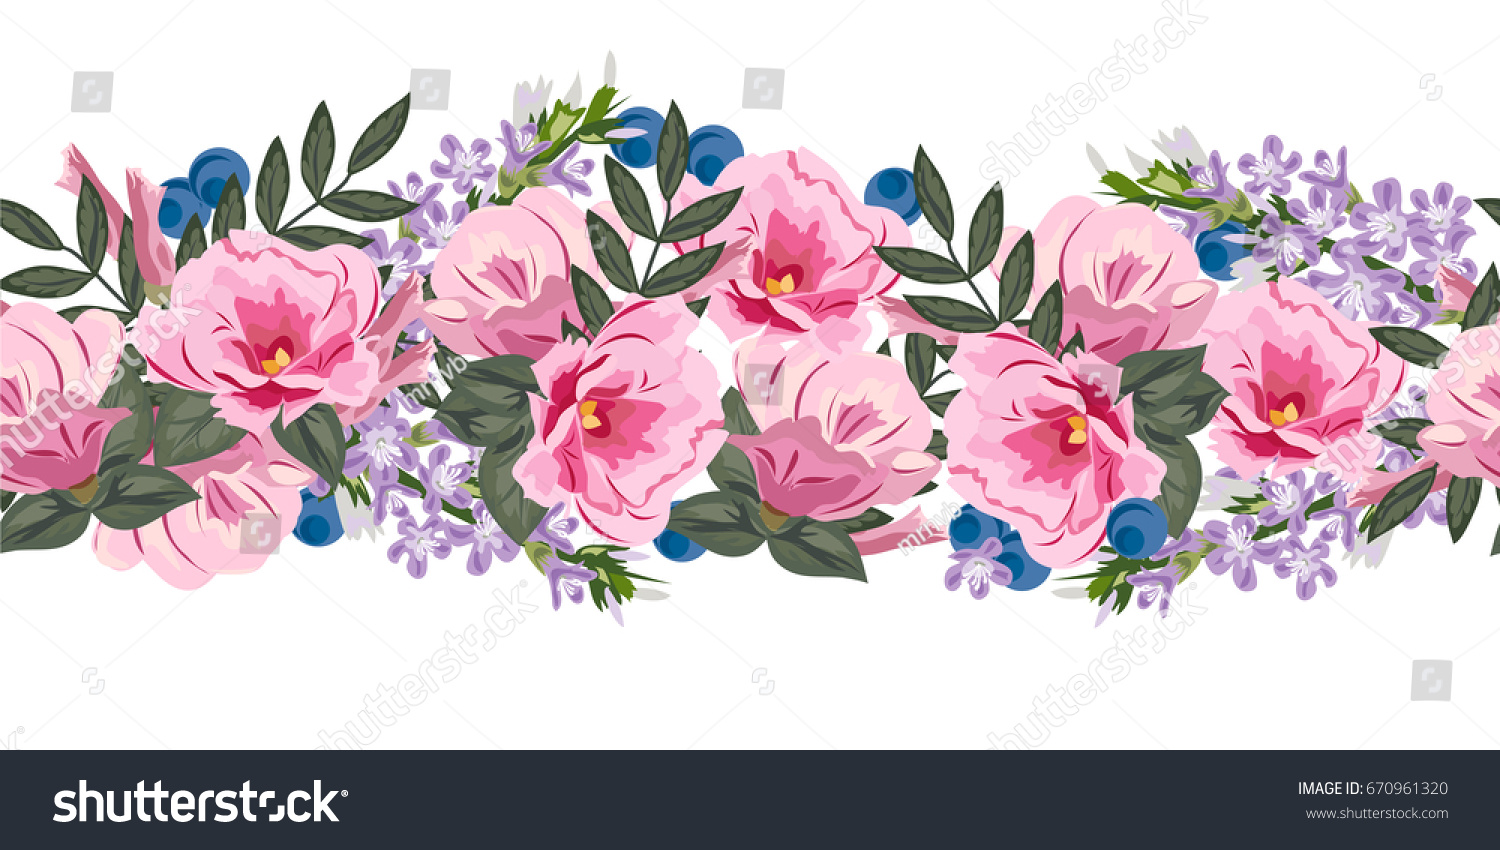 Seamless Floral Border Cute Pink Flowers Stock Illustration